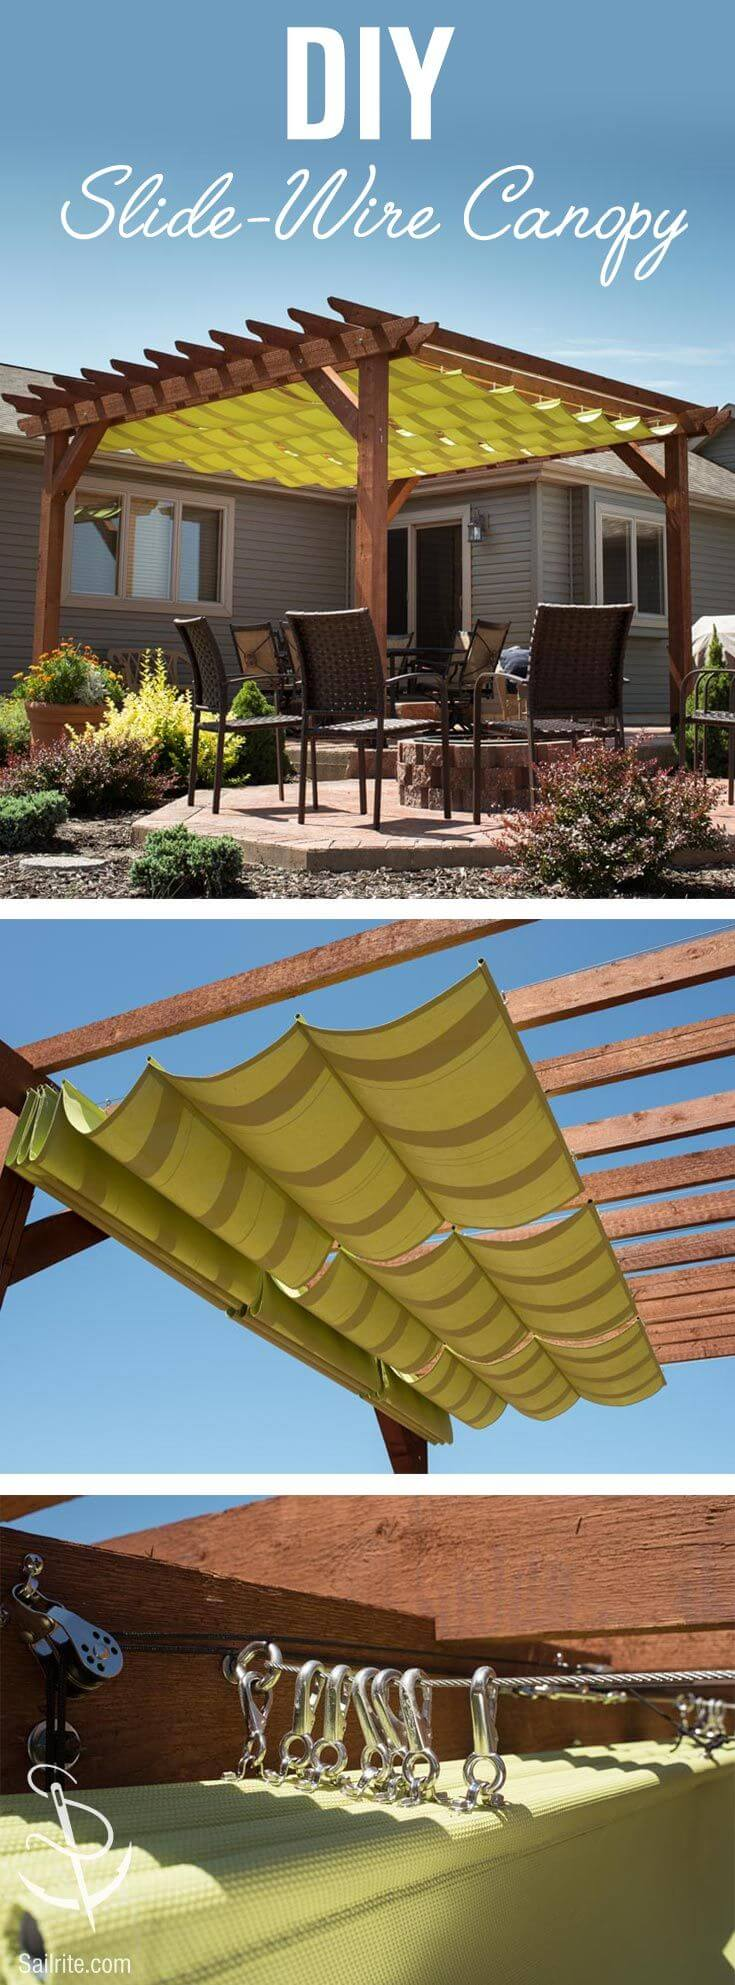 Backyard Pergola with Sliding Shade Canopy